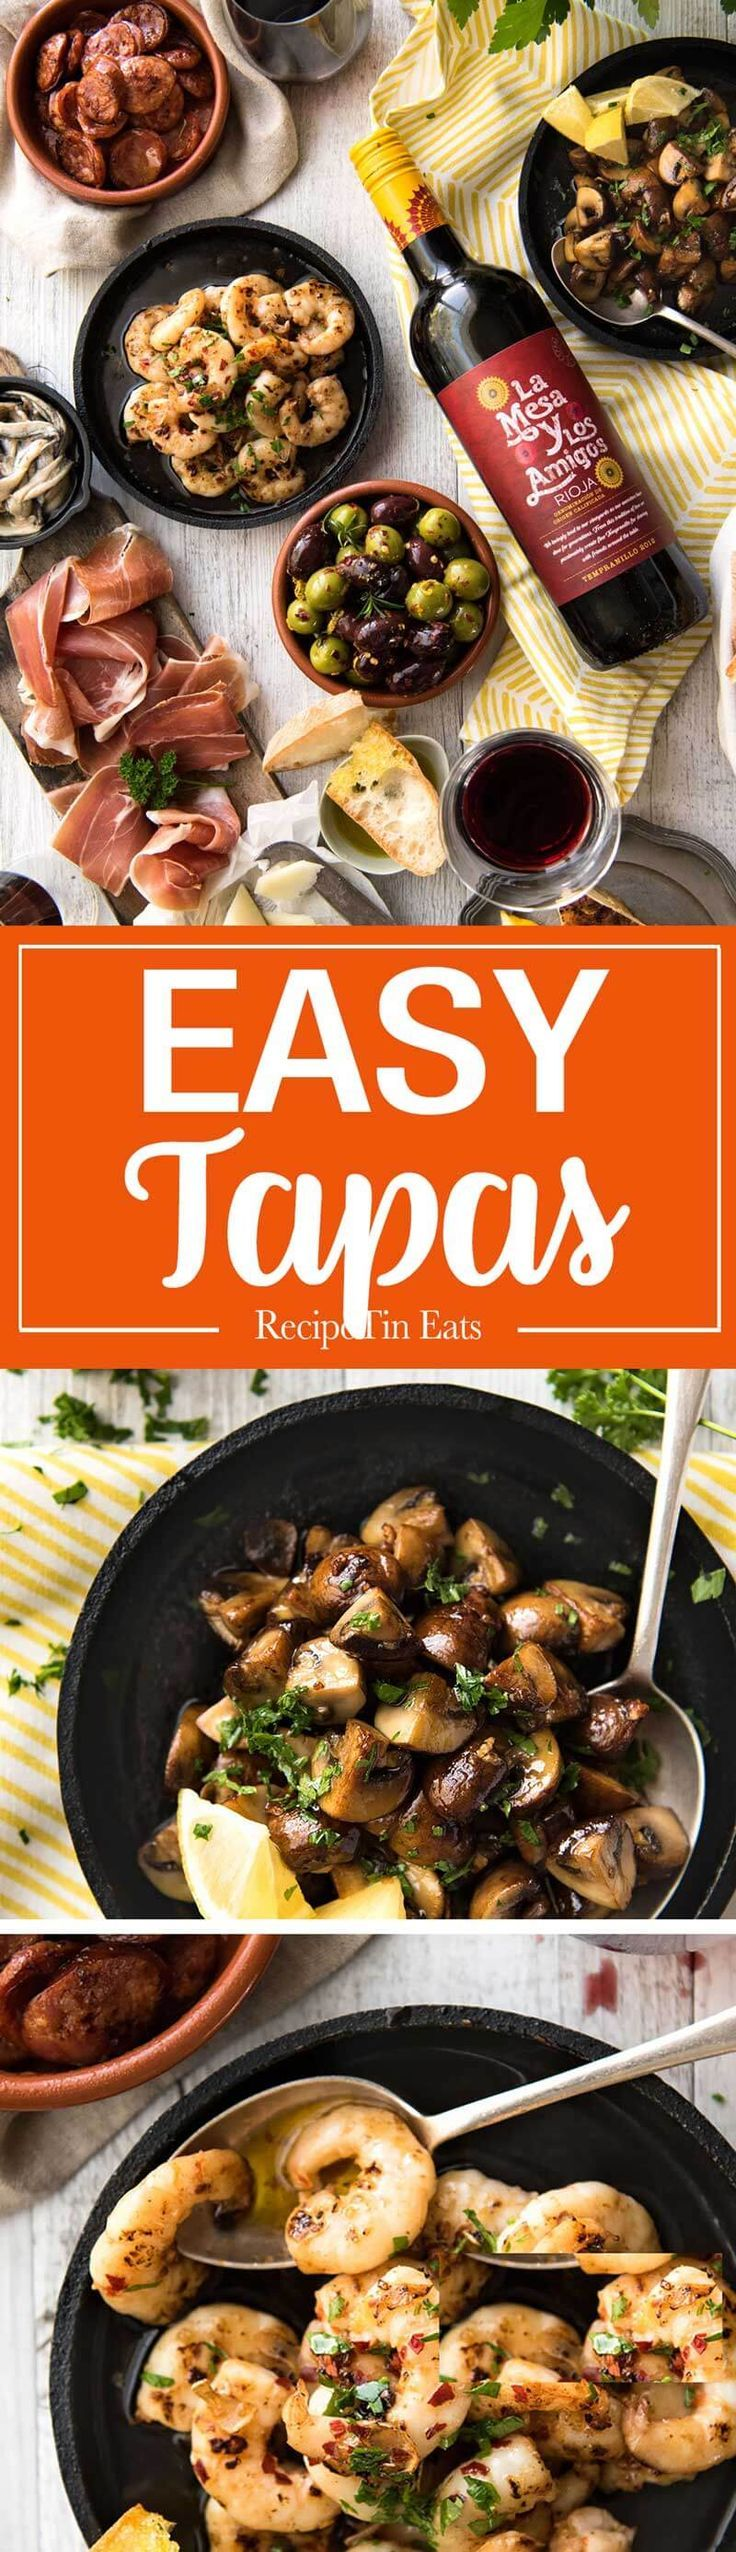 5 Easy Spanish Tapas recipes - all your favorites from the tapas bar! Garlic mushrooms, chorizo, garlic shrimp/prawns, Spanish marinated olives , Spanish omelette and a cheese platter! http://www.recipetineats.com